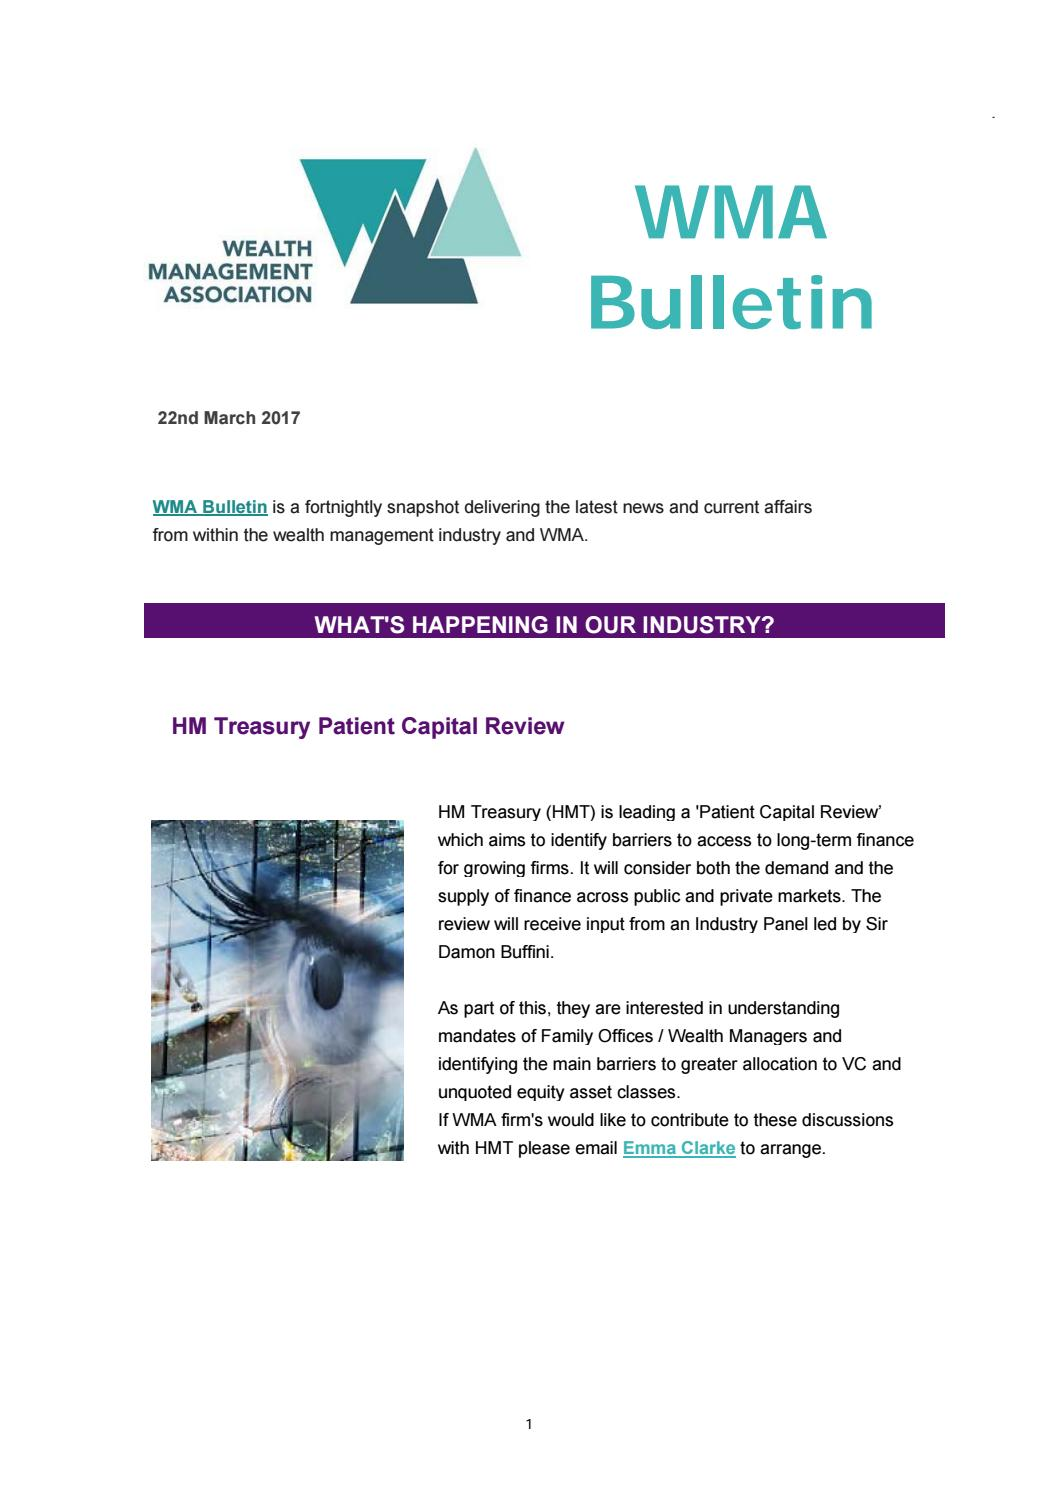 Fortnightly bulletin 22nd march 2017 by PIMFA - issuu